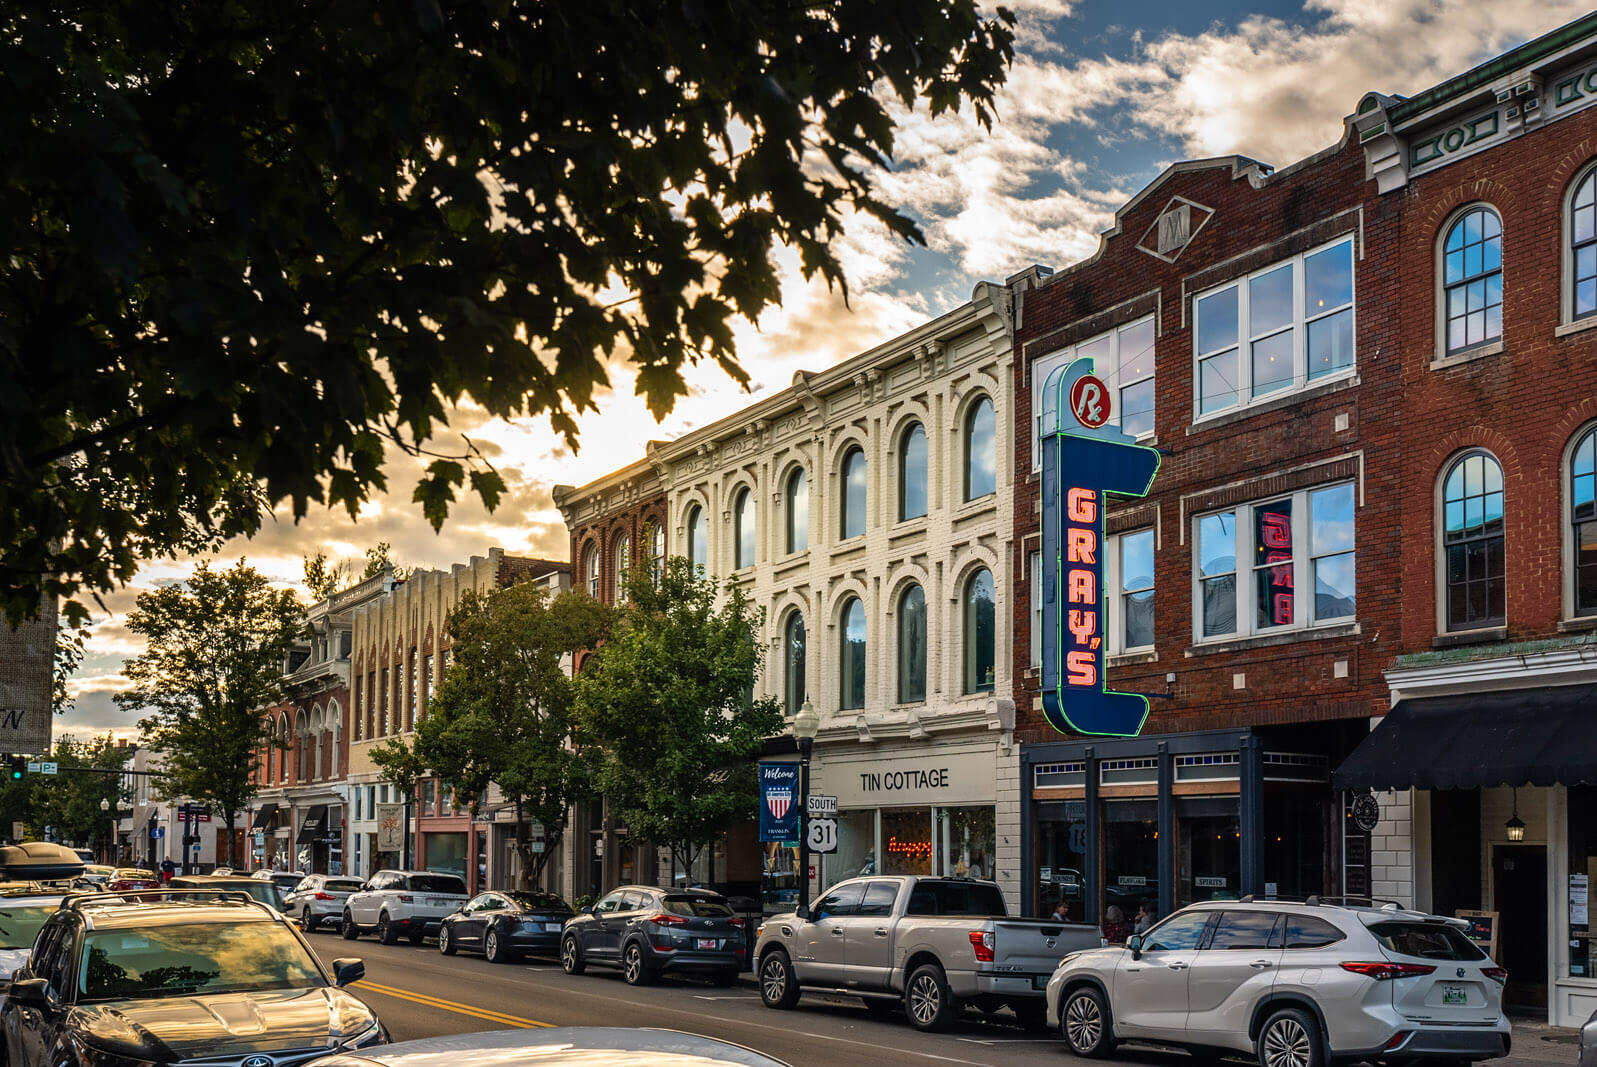 view down Main Street in Downtown Franklin Tennessee